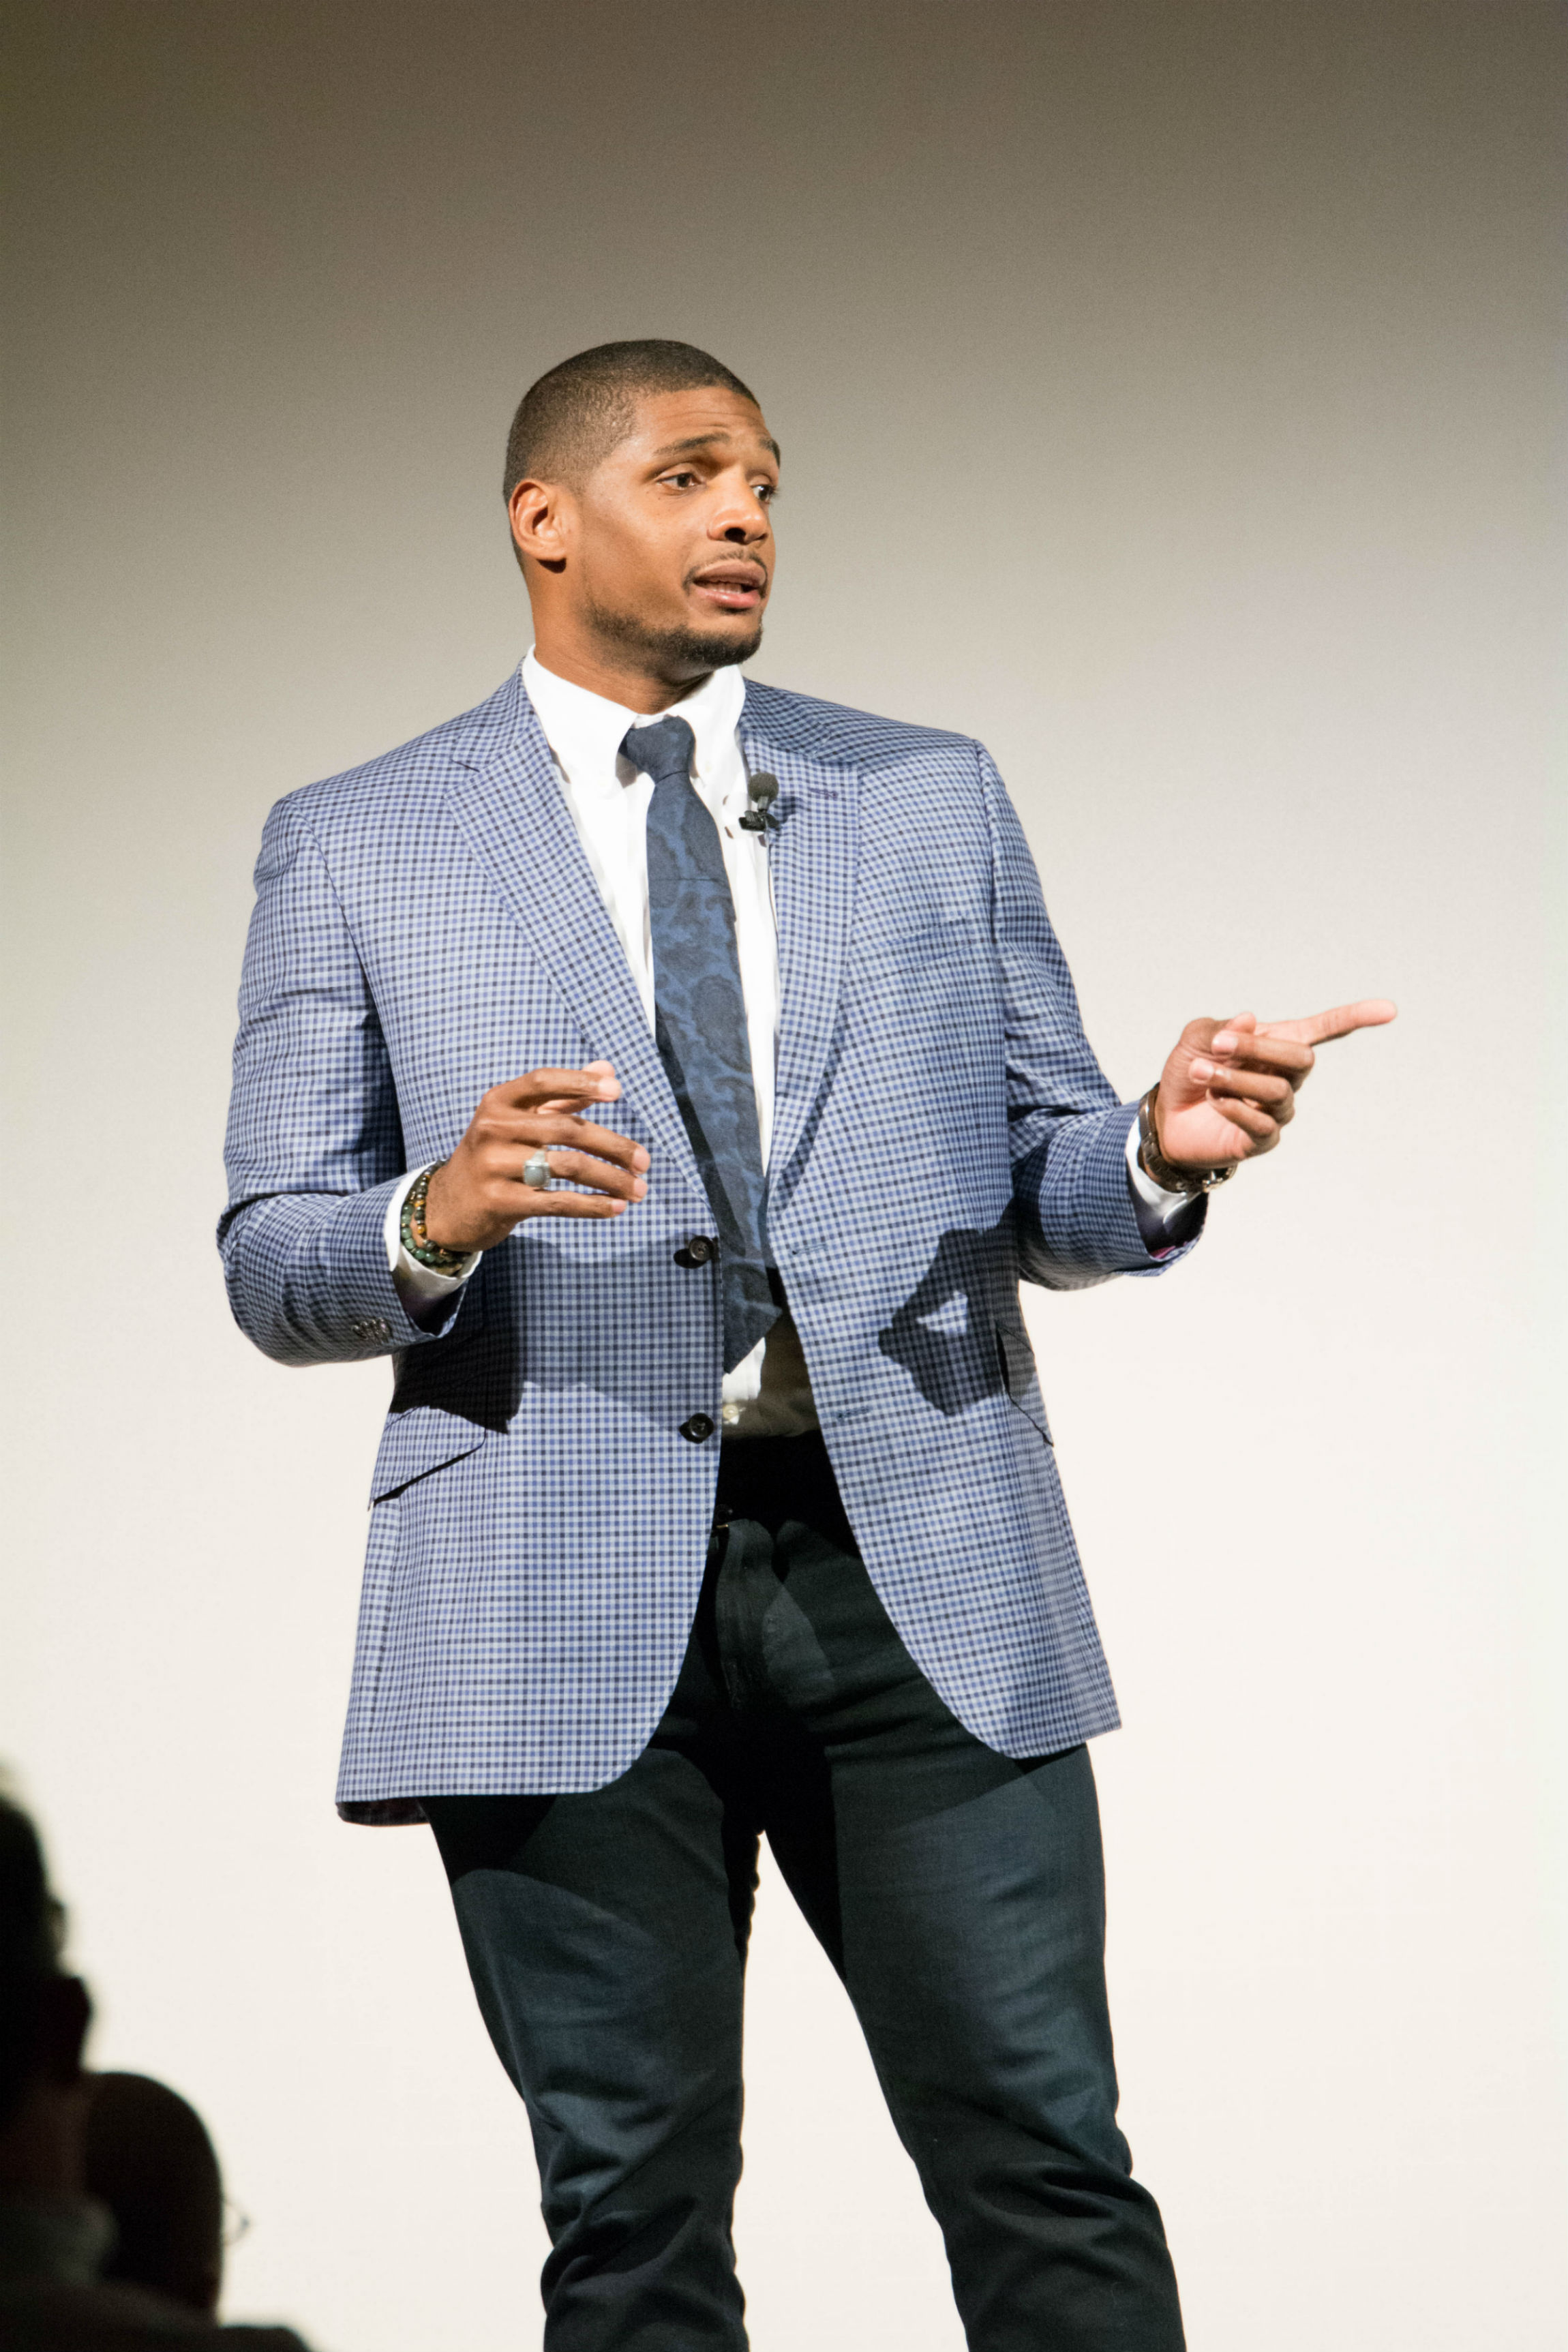 LGBTQ History Month kicks off with keynote speaker Michael Sam, the first openly gay man drafted into the NFL and any major American sport.